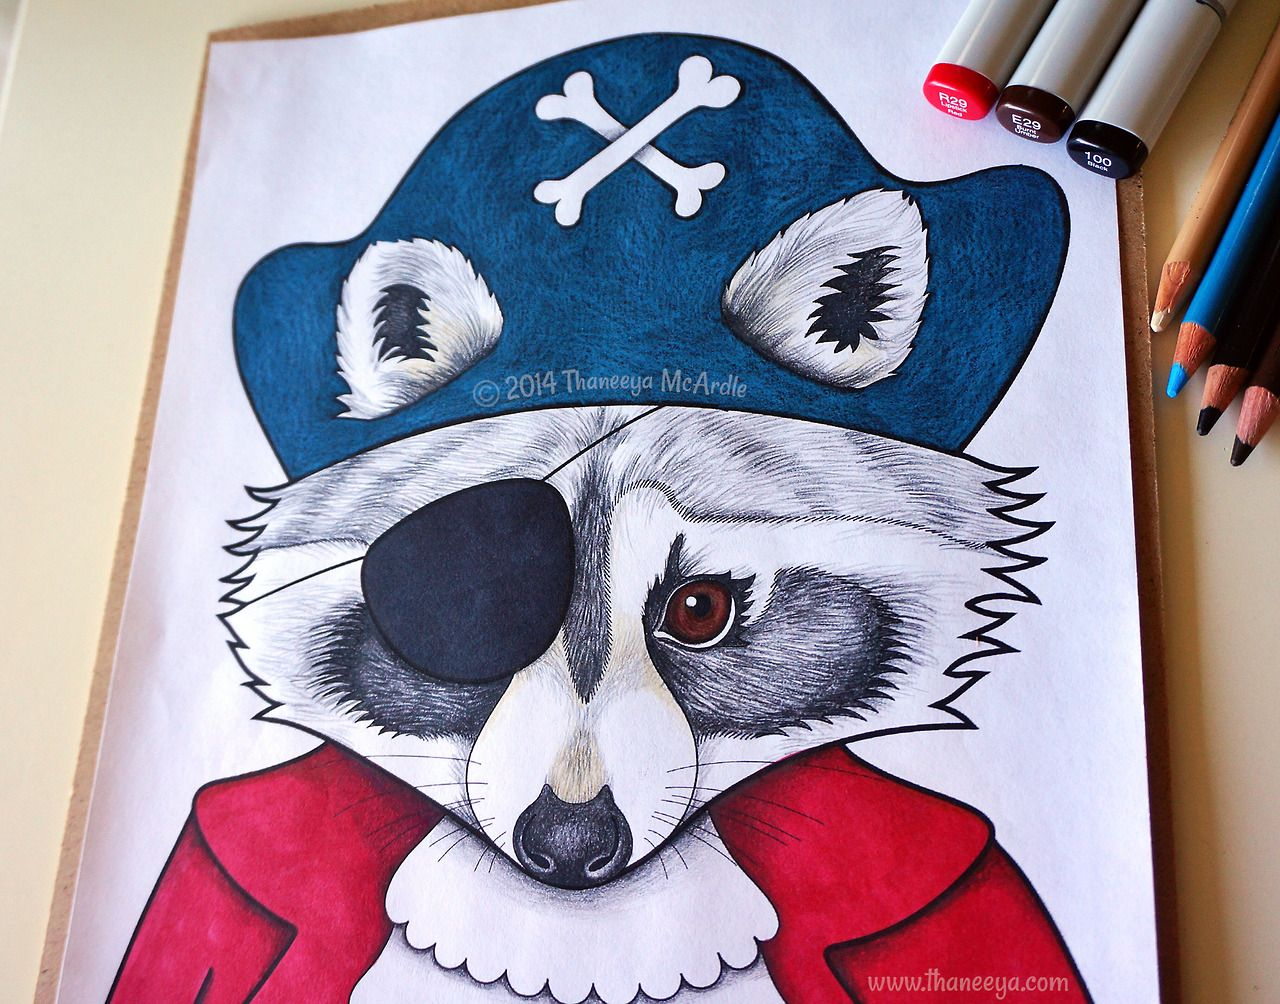 Pirate Raccoon Coloring Page From Thaneeya McArdles Dapper Animals Book